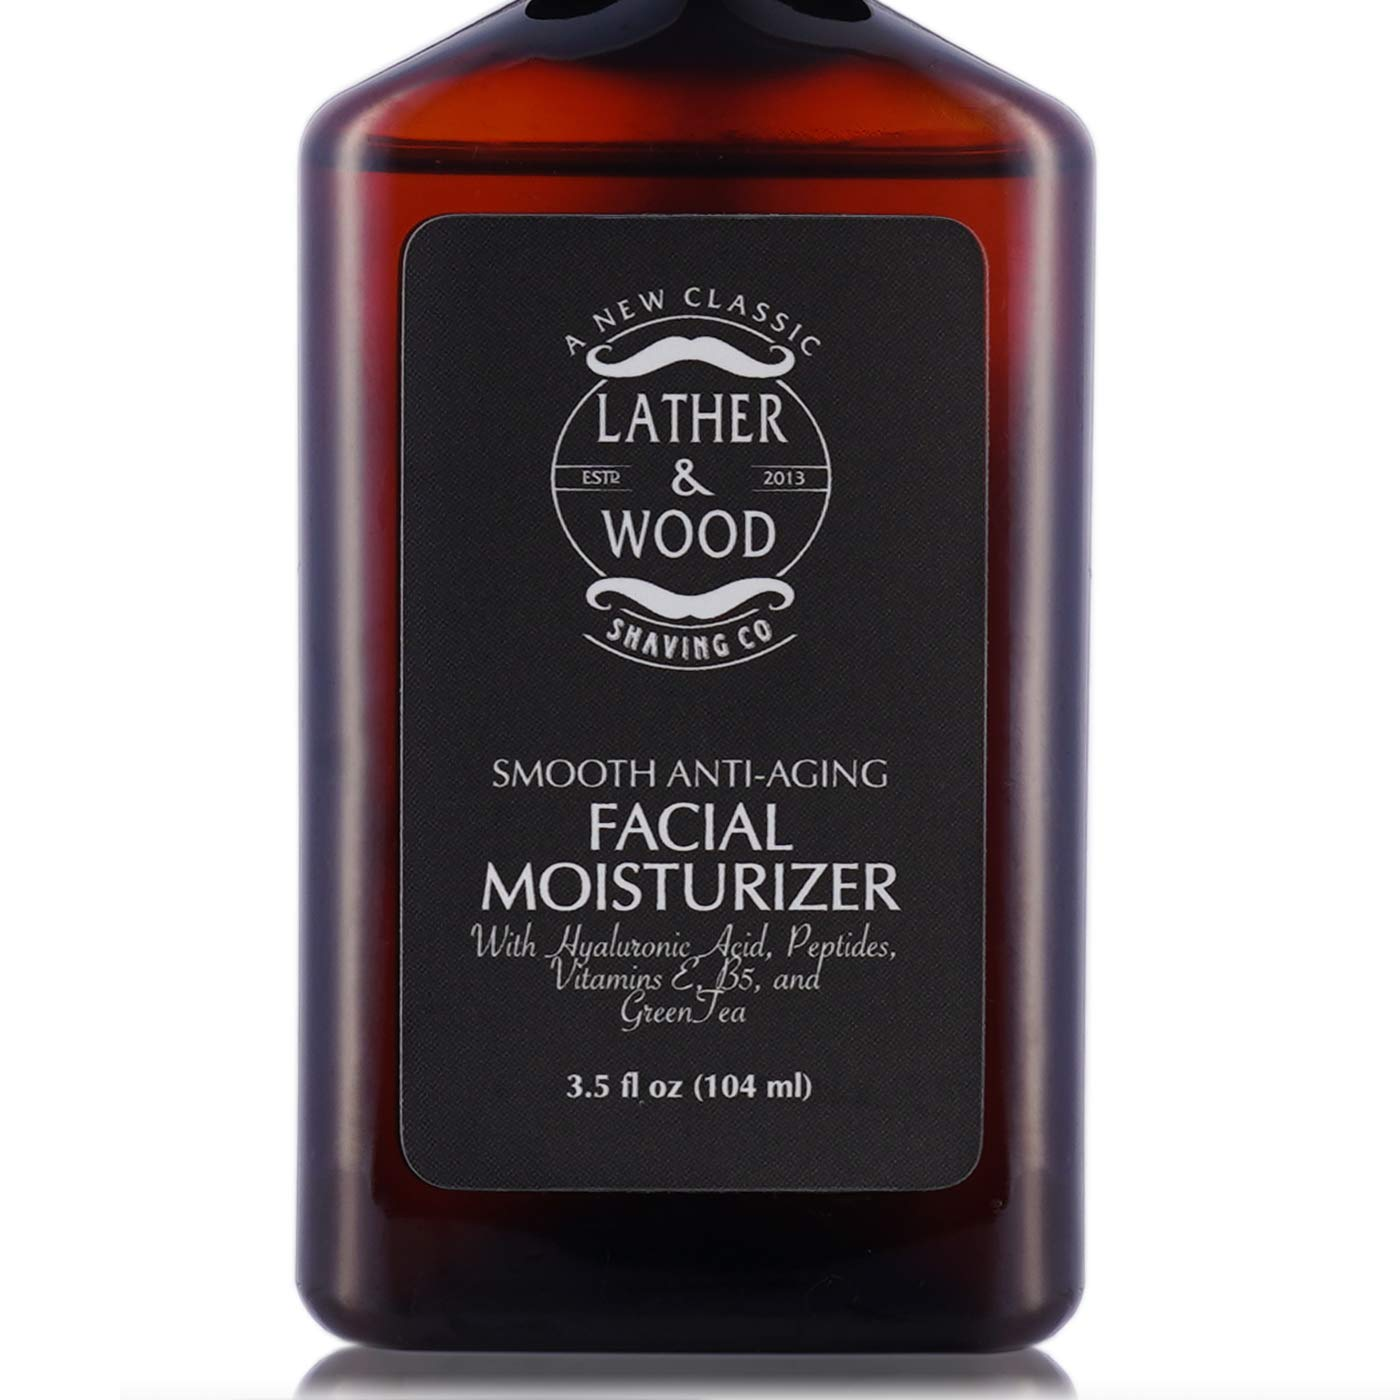 Face Moisturizer for Men - Lather & Wood's Luxurious Sophisticated Mens Moisturizer for the Man's Man. Fragrance-Free Face Cream for Men. (Unscented, 3.5 ounce) by Lather & Wood Shaving Co.